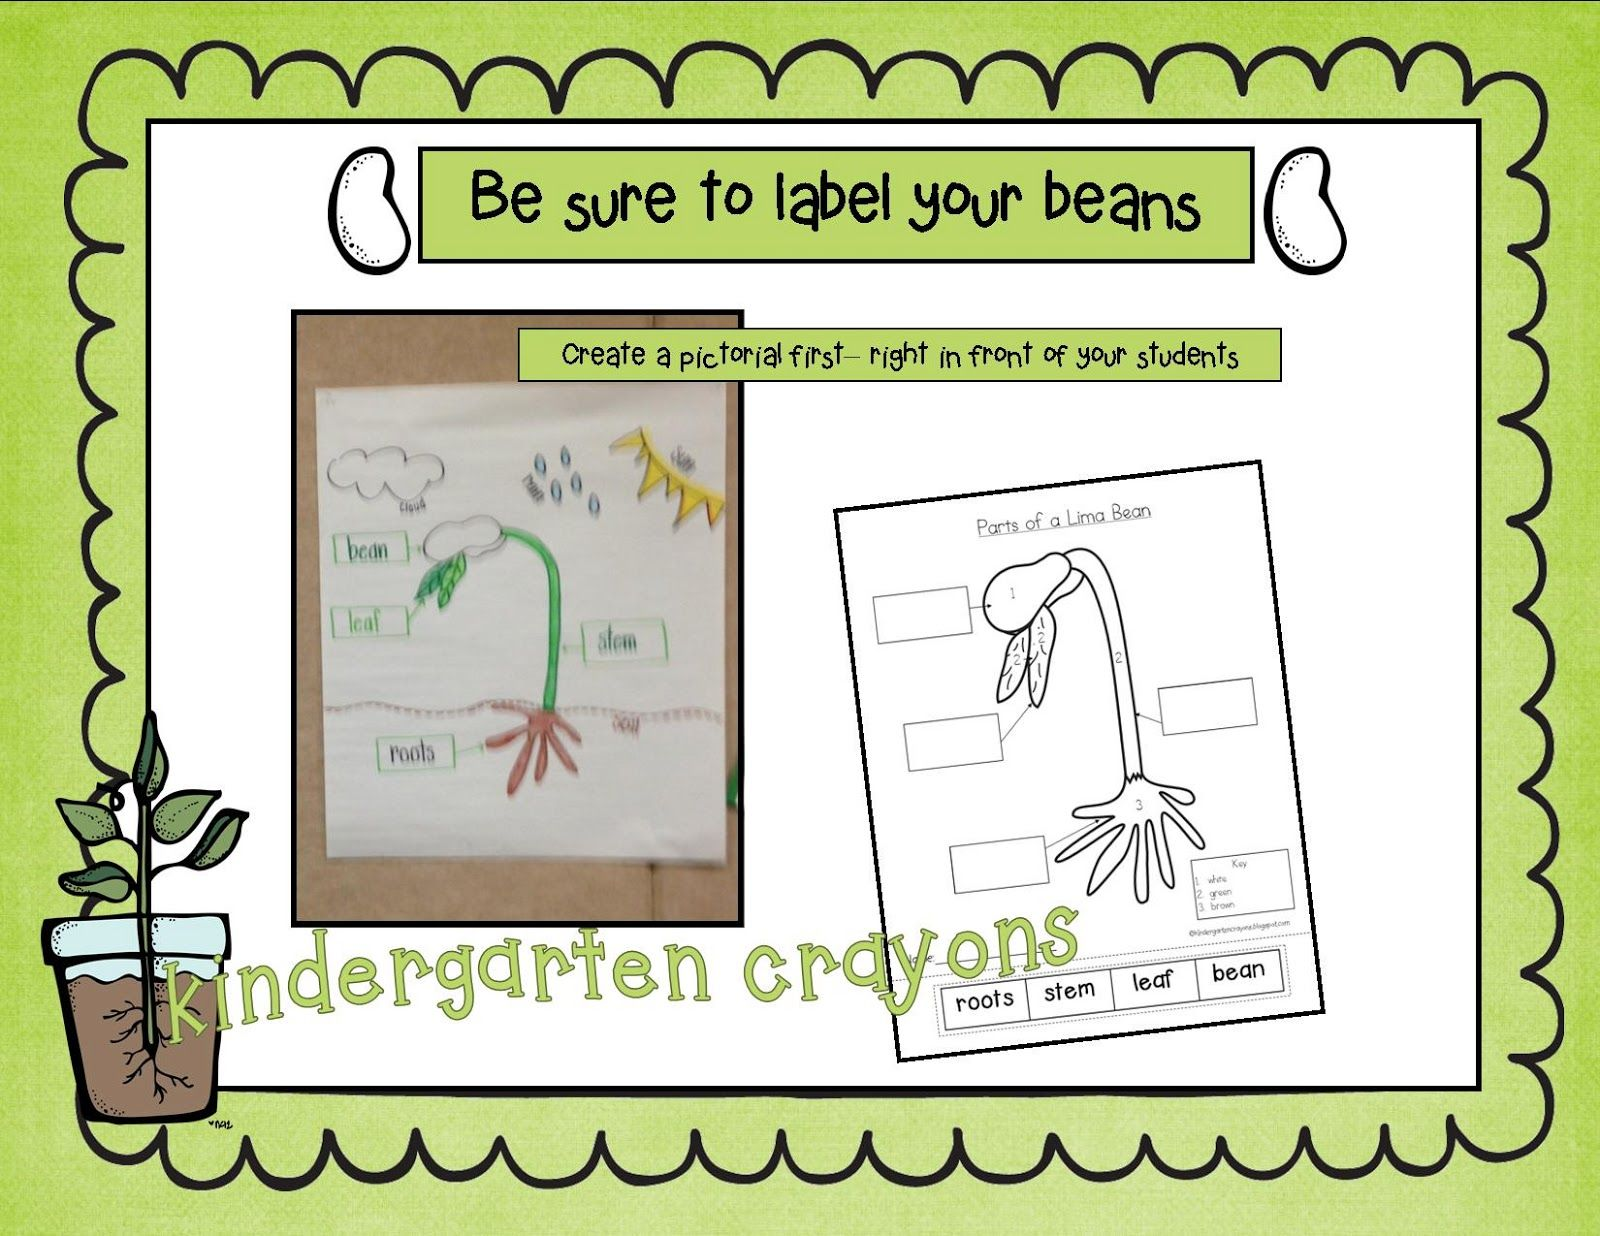 Kindergarten Crayons Please Label Your Parts A Lima Bean Pictorial And Cut And Paste Freebie